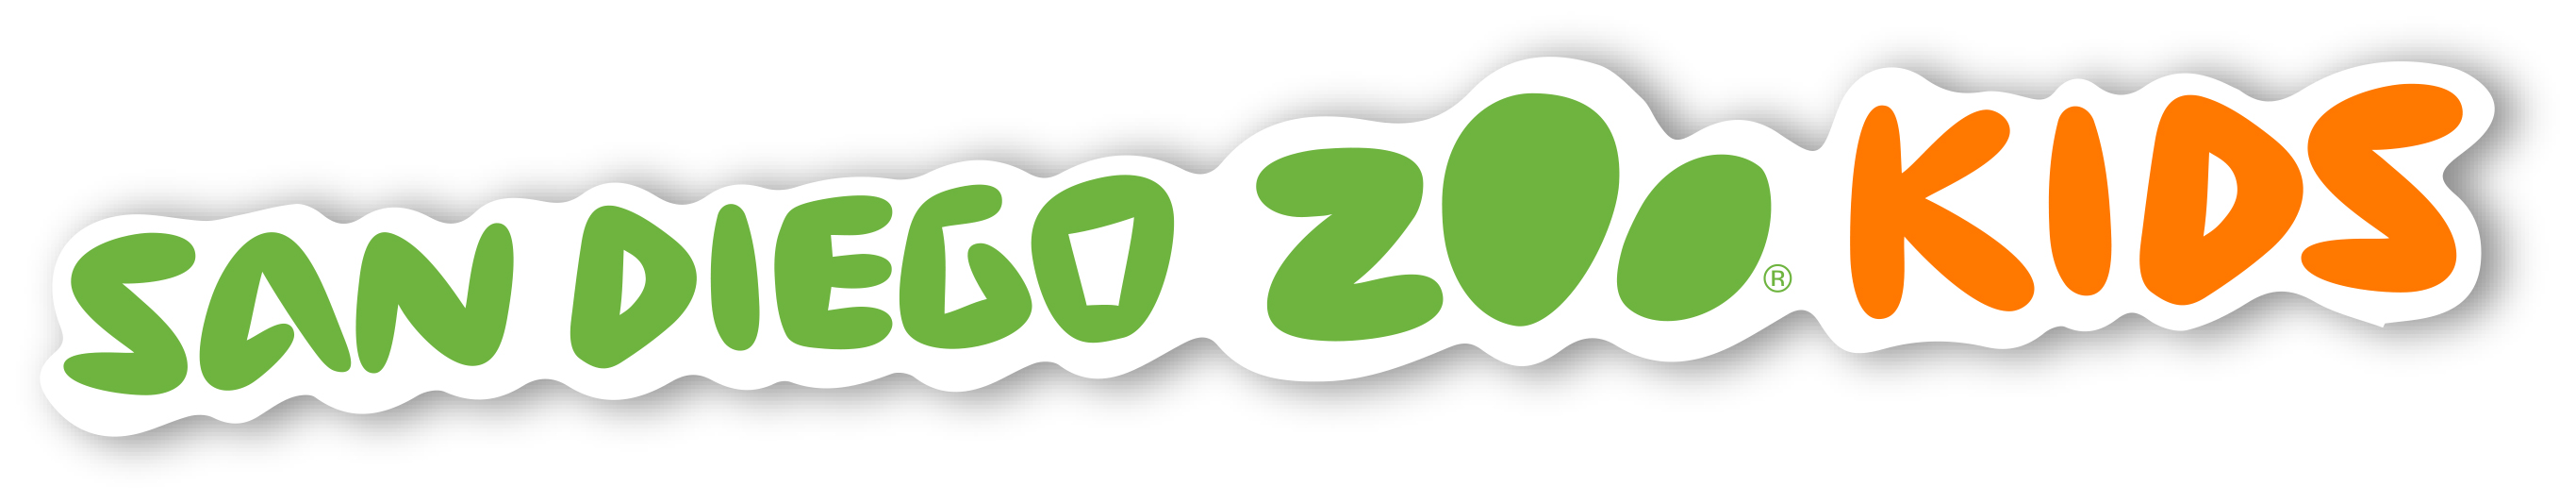 Image result for san diego zoo for kids